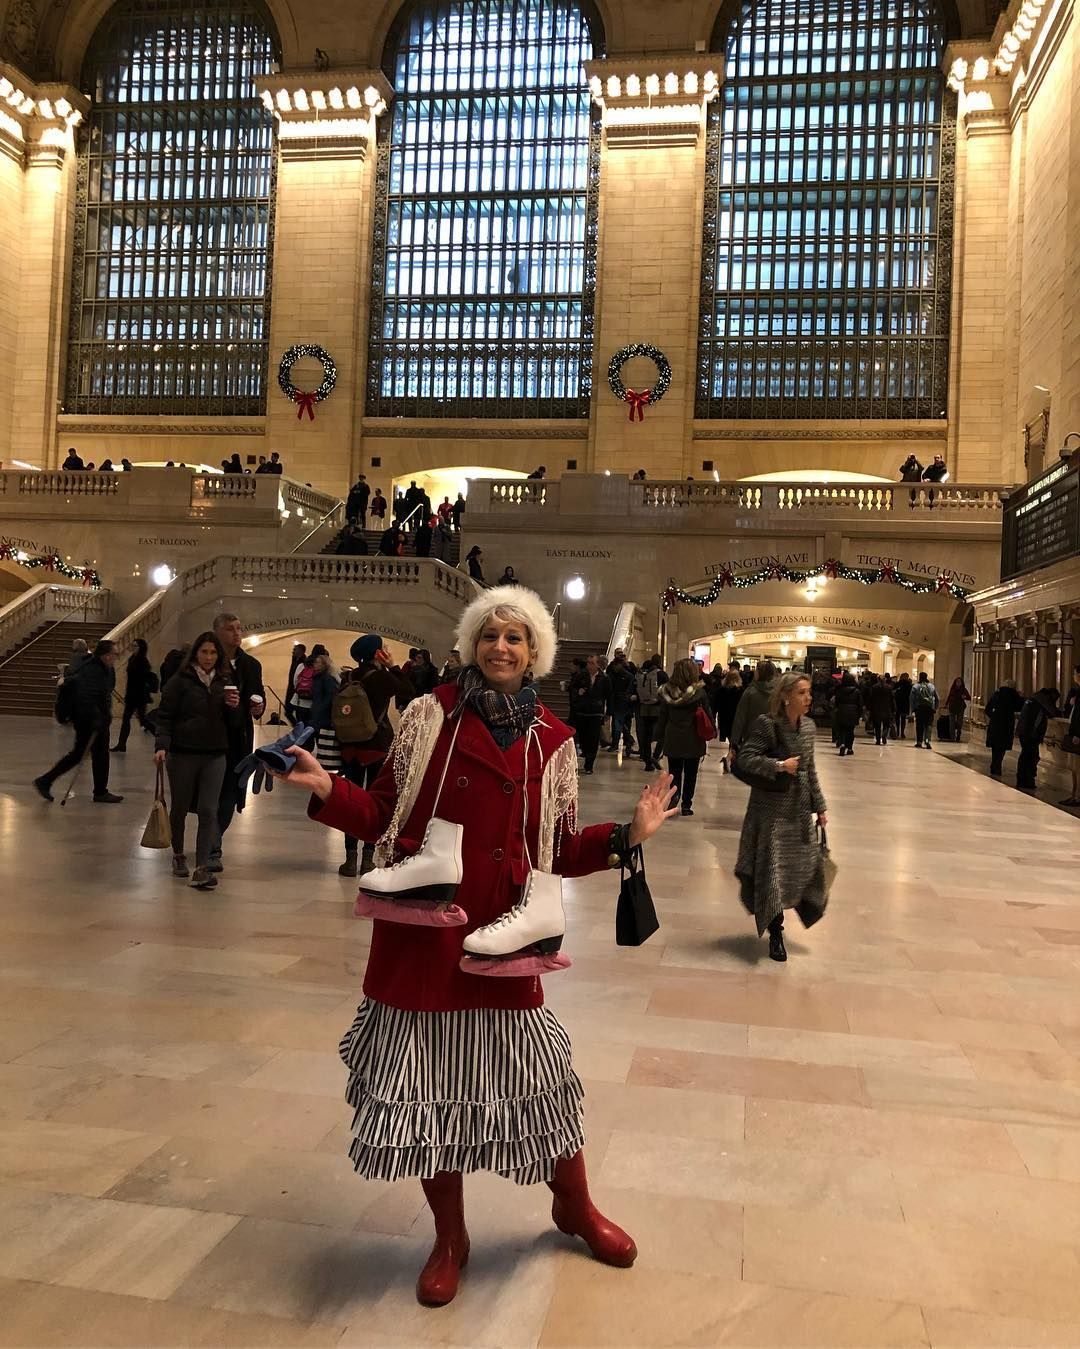 I Went To The Harvard Of Santa Schools To Become Mrs